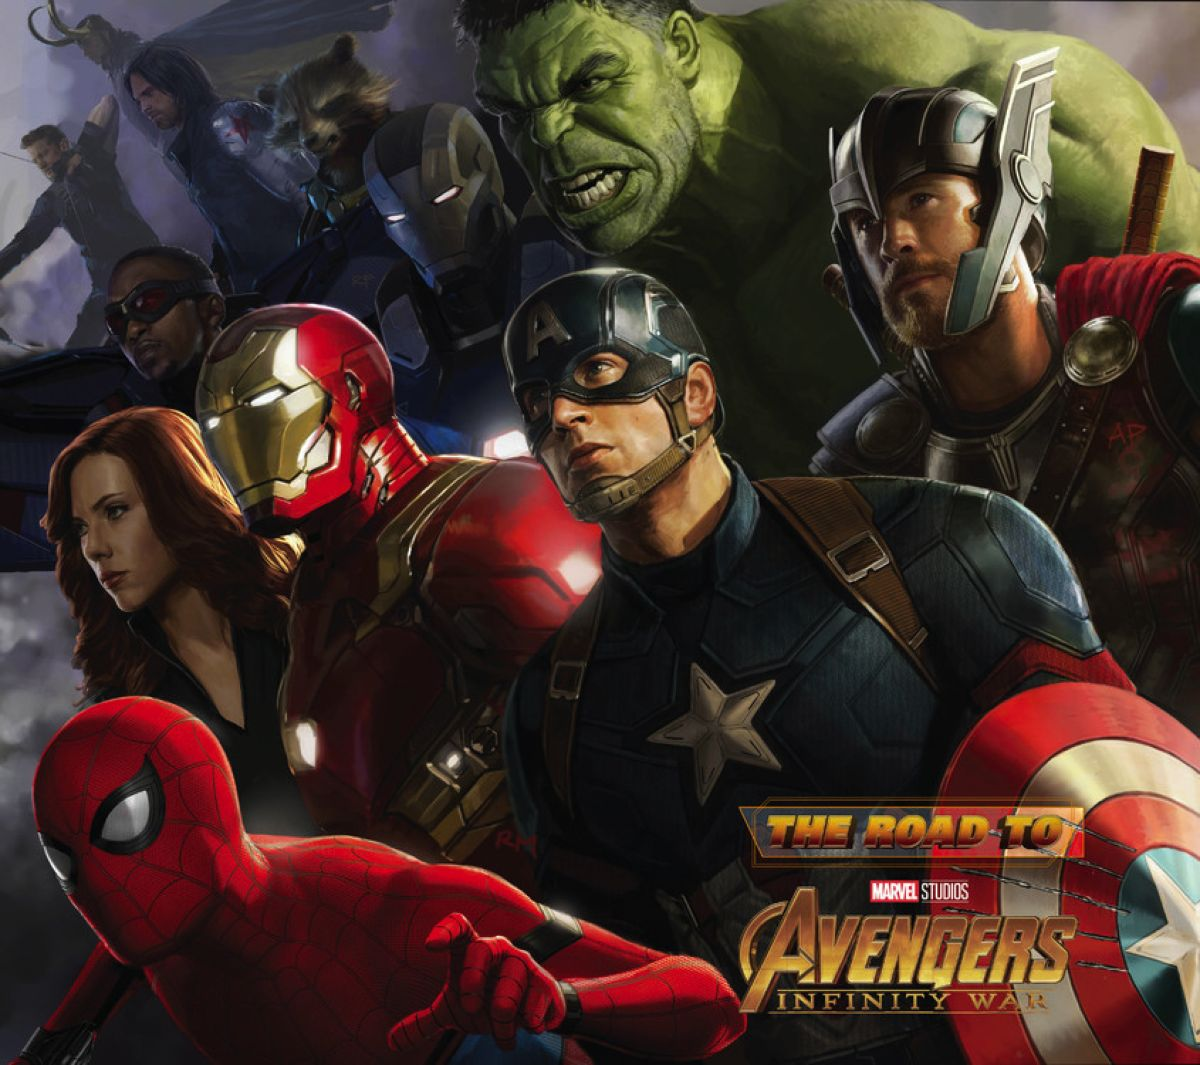 The Road to Marvels Avengers: Infinity War - The Art of the Marvel Cinematic Universe Vol. 2 the avengers omnibus volume 2